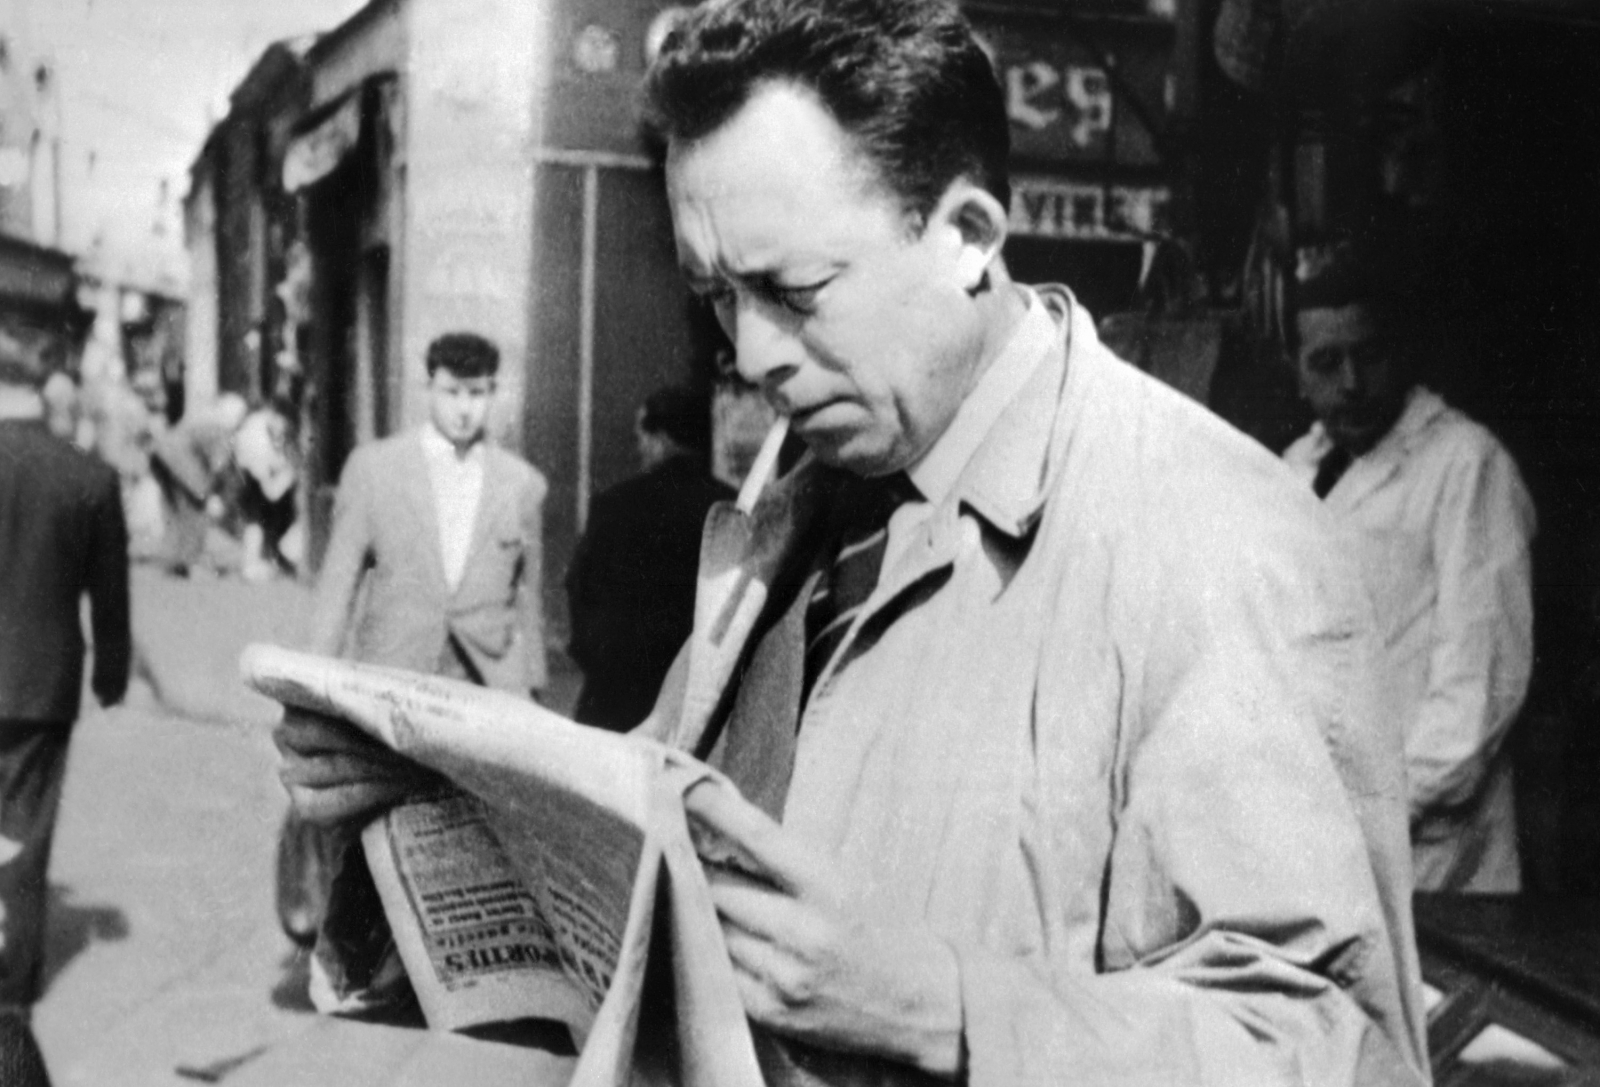 albert camus smoking cigarette ban France